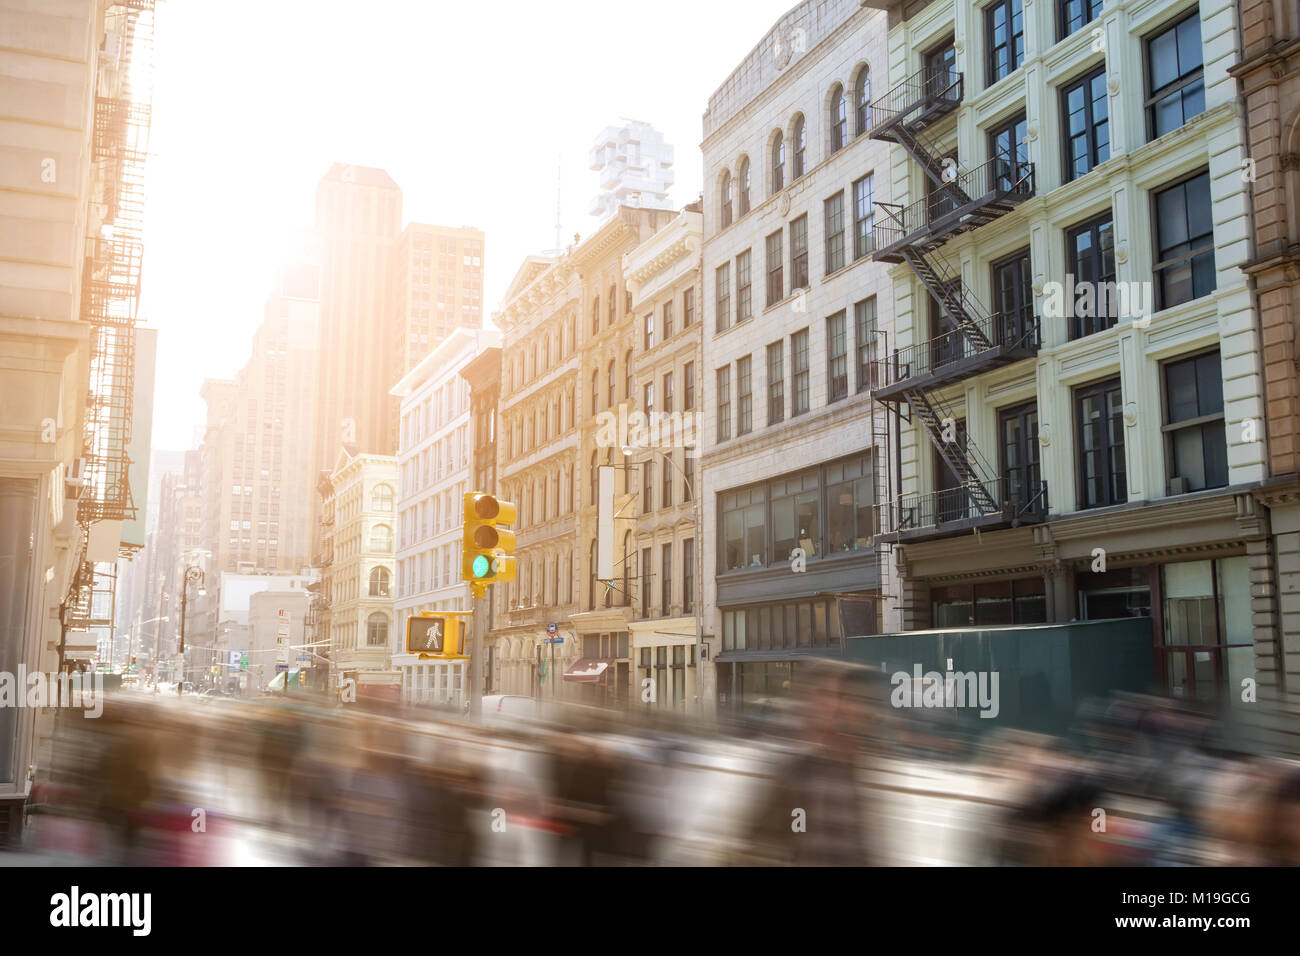 Fast paced motion blur of people walking down Broadway in SoHo Manhattan, New York City - Stock Image